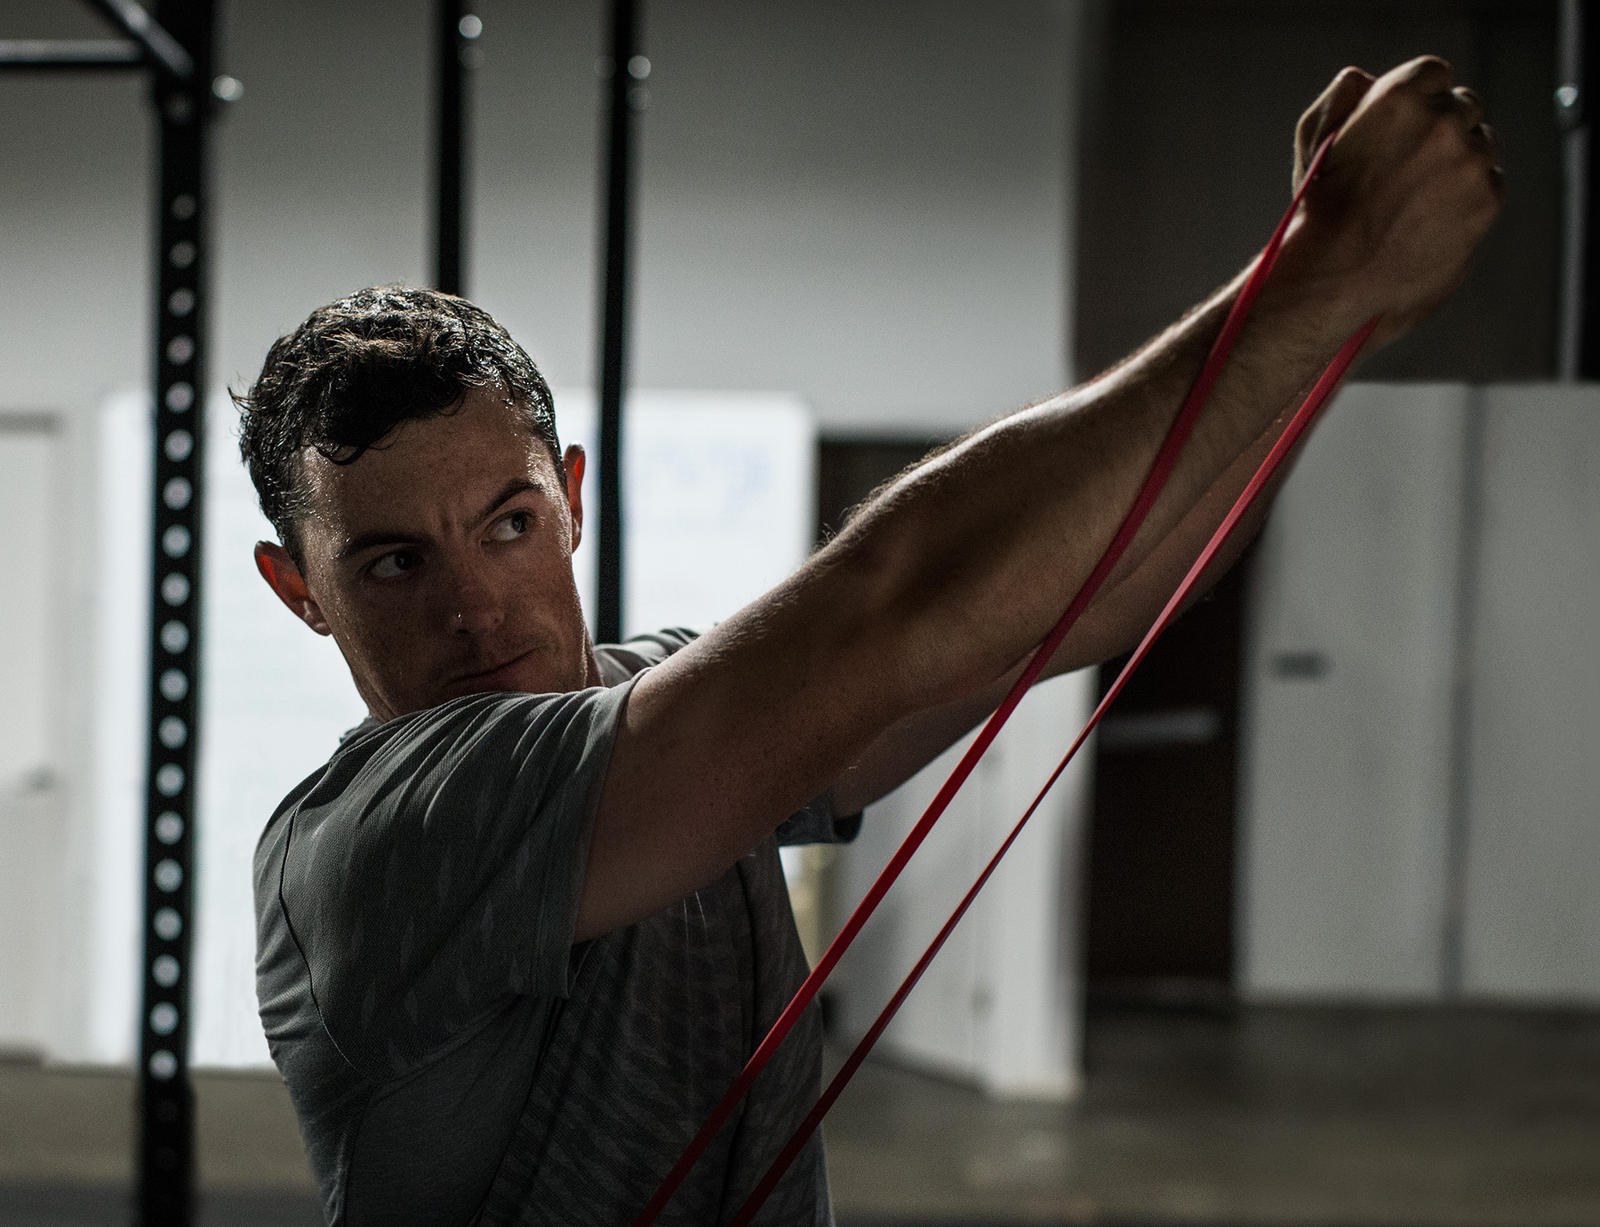 Rory's new Nike commercial